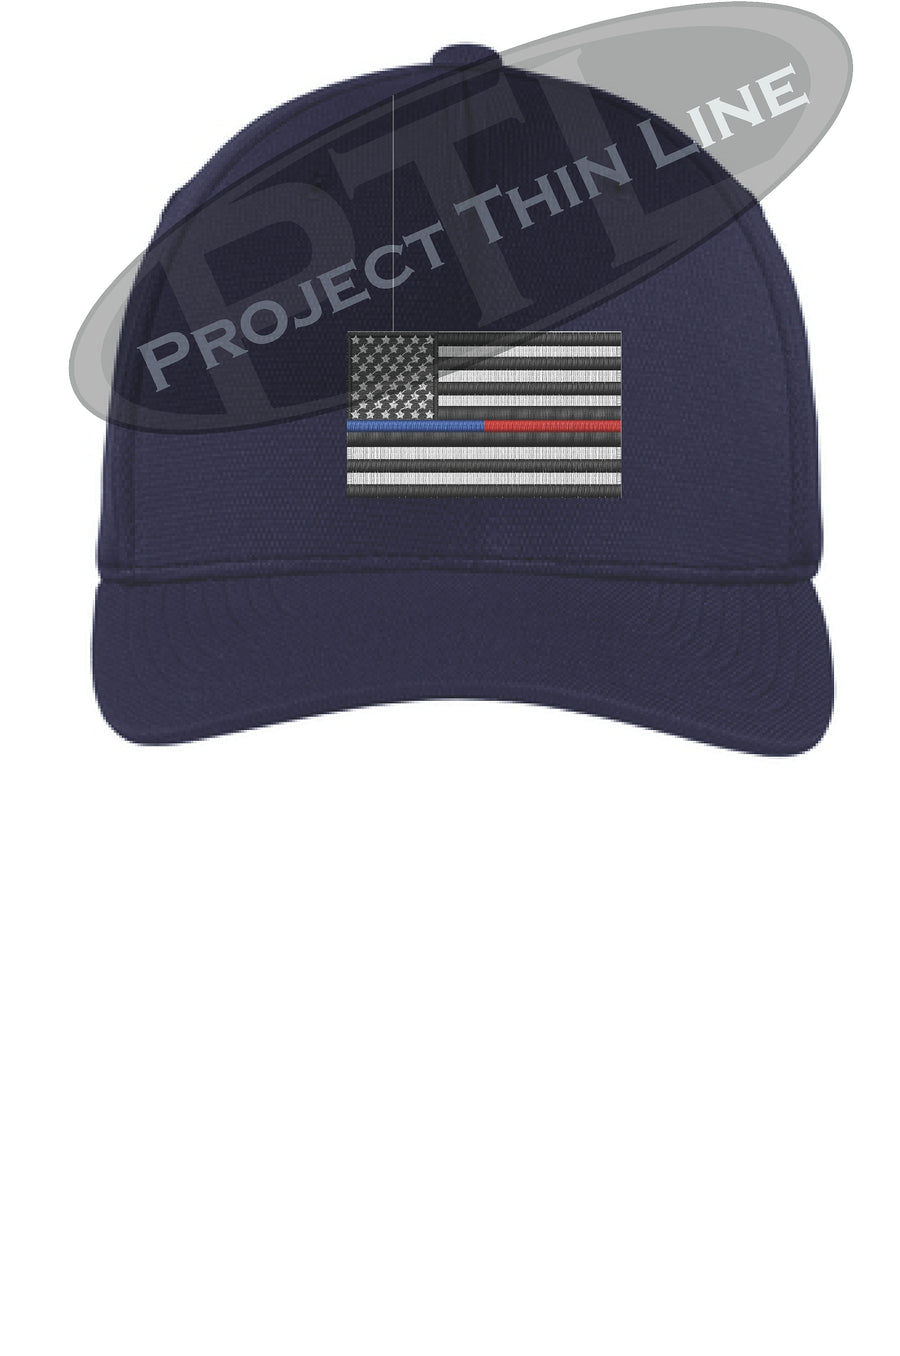 Embroidered Thin Blue / Red Line American Flag Flex Fit Fitted Hat